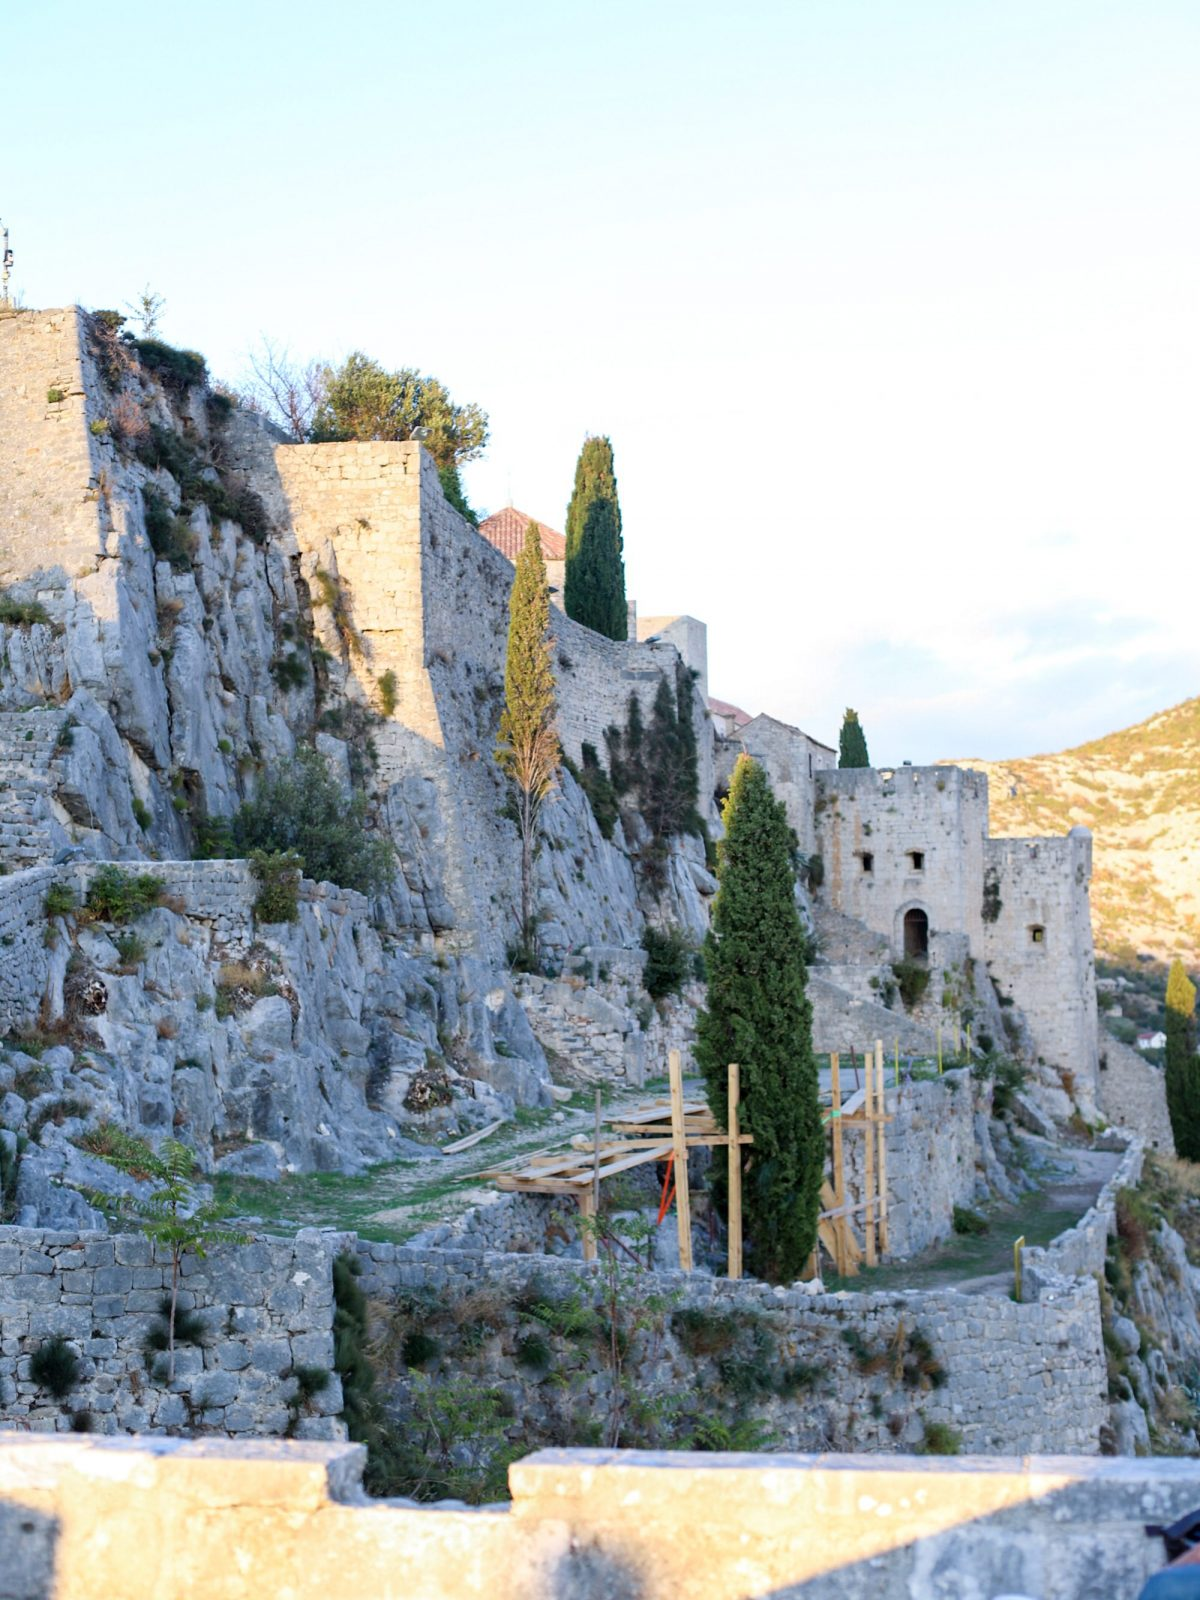 meereen game of thrones, klis fortress, split croatia, game of thrones filming locations, khaleesi meereen